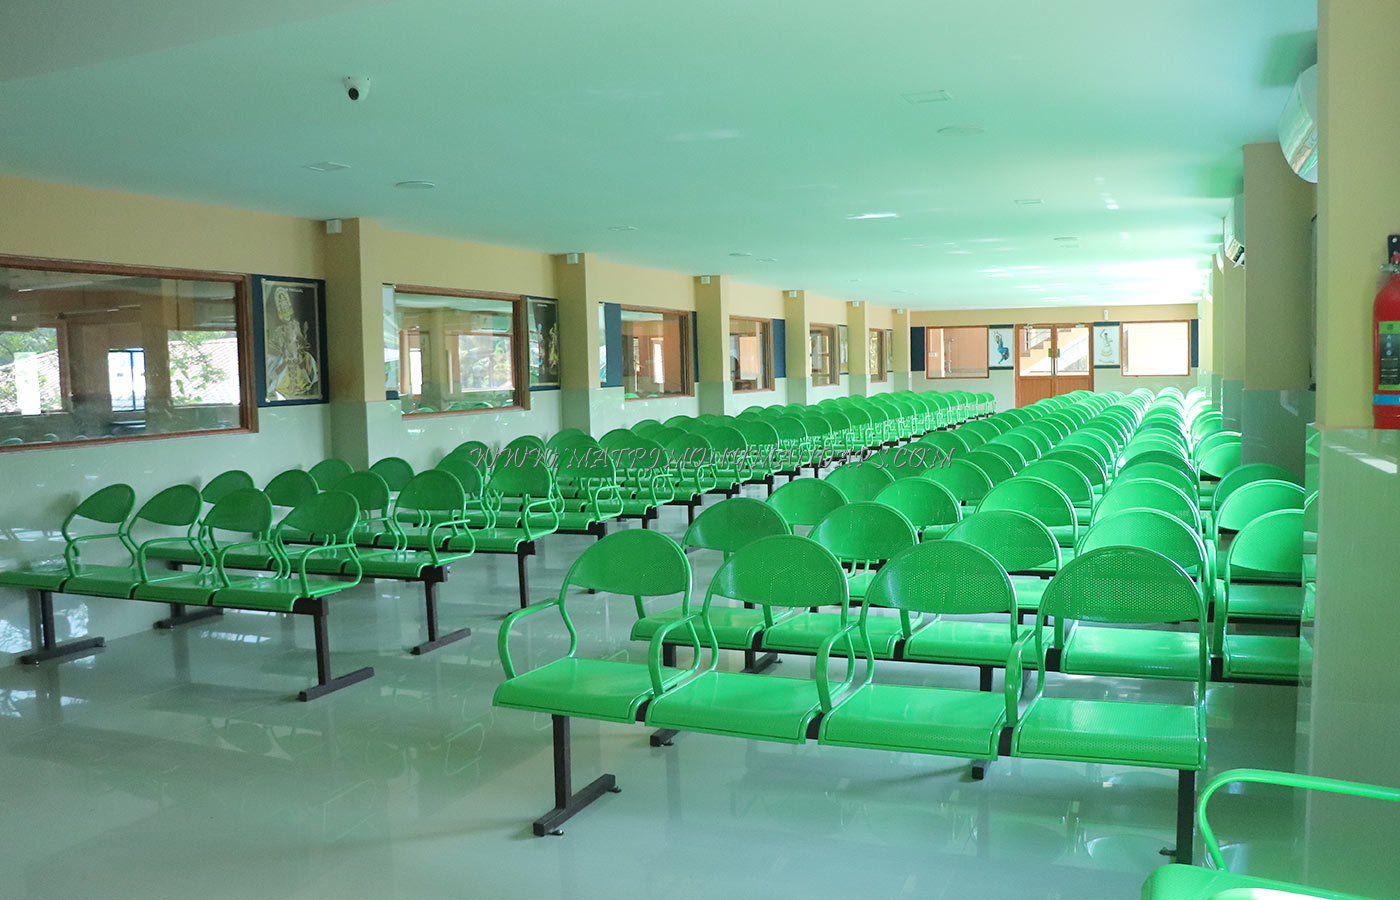 Find the availability of the Arundathi Auditorium Conference Hall (A/C) in Kizhakkambalam, Kochi and avail special offers